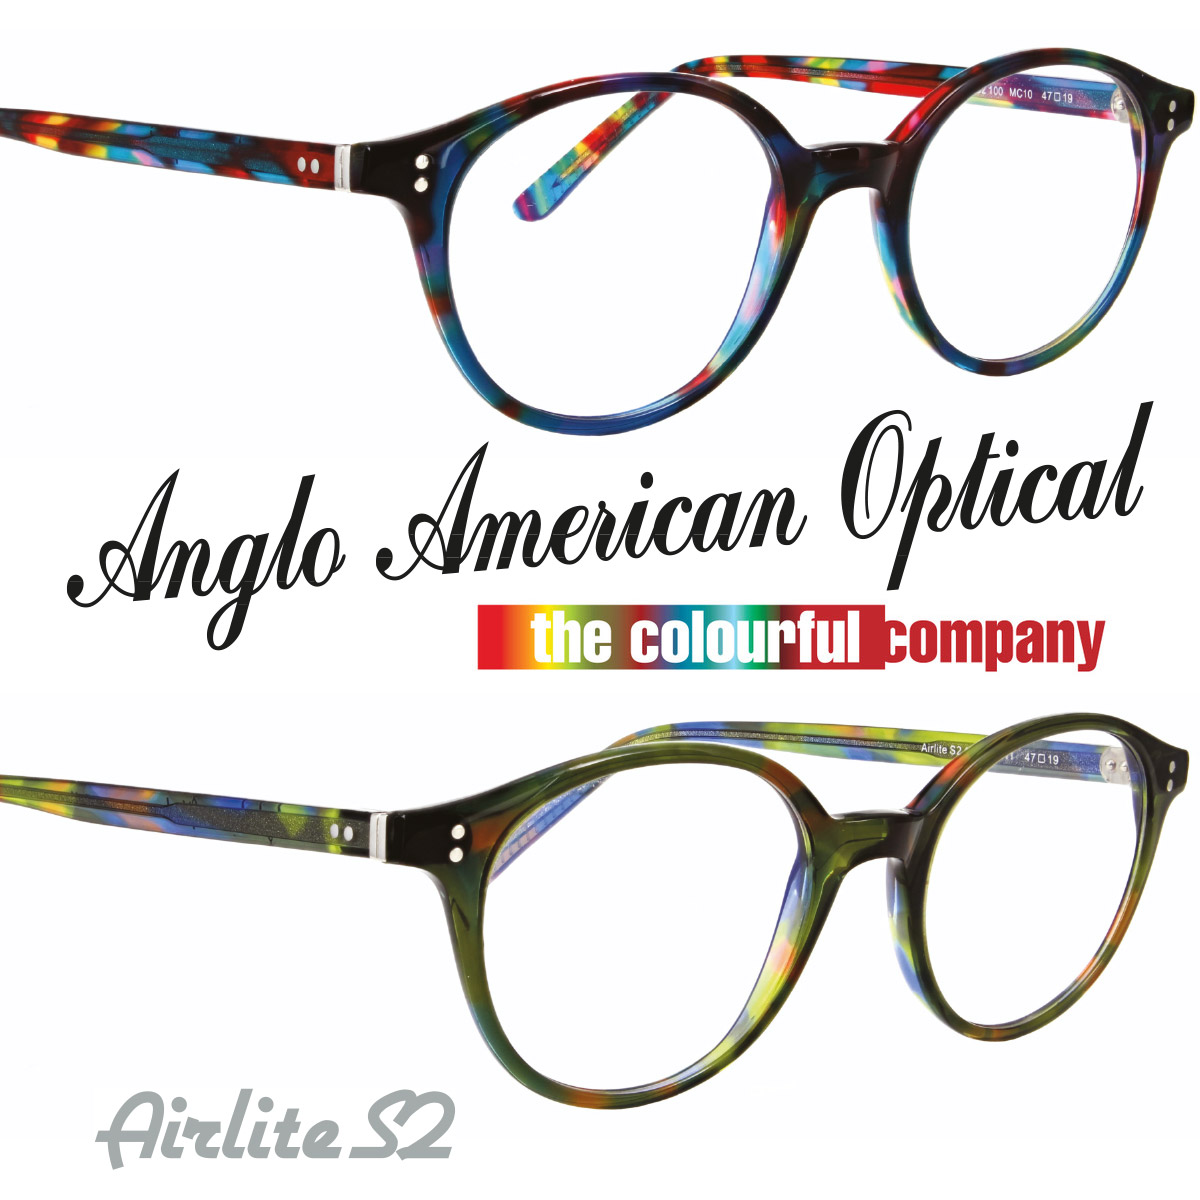 9a01a530a9a Anglo American Optical  the colourful company